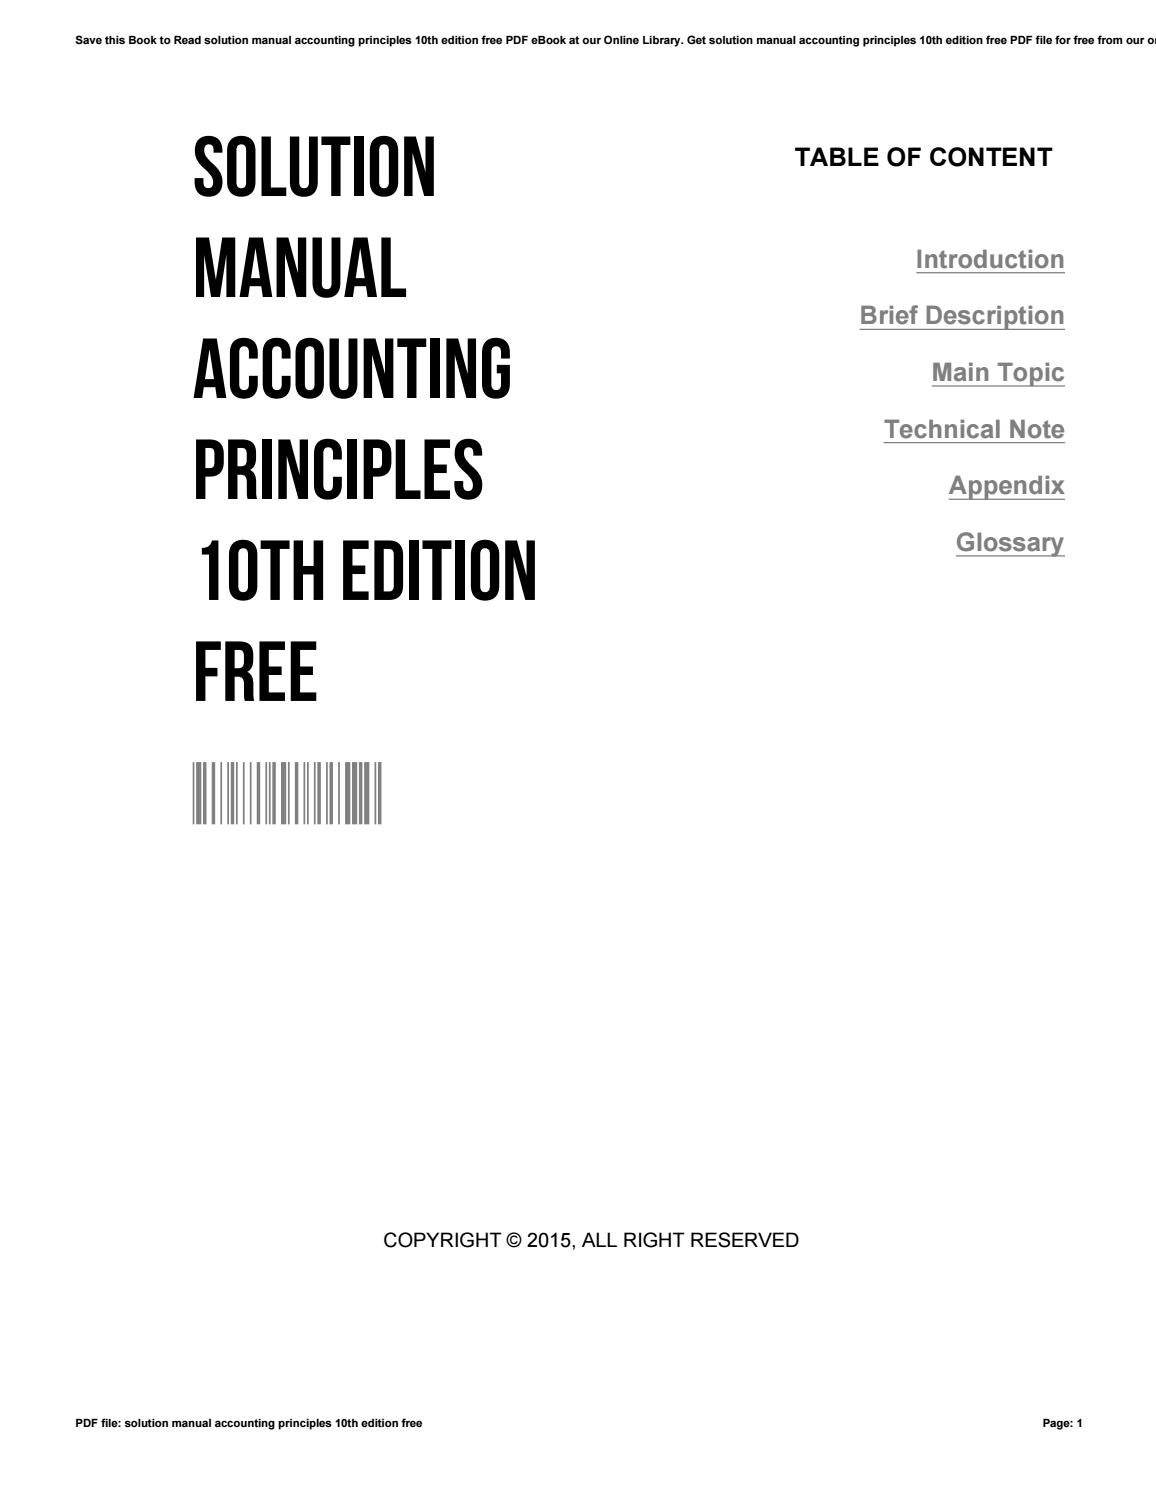 Bestseller: Accounting Principles Solution Manual